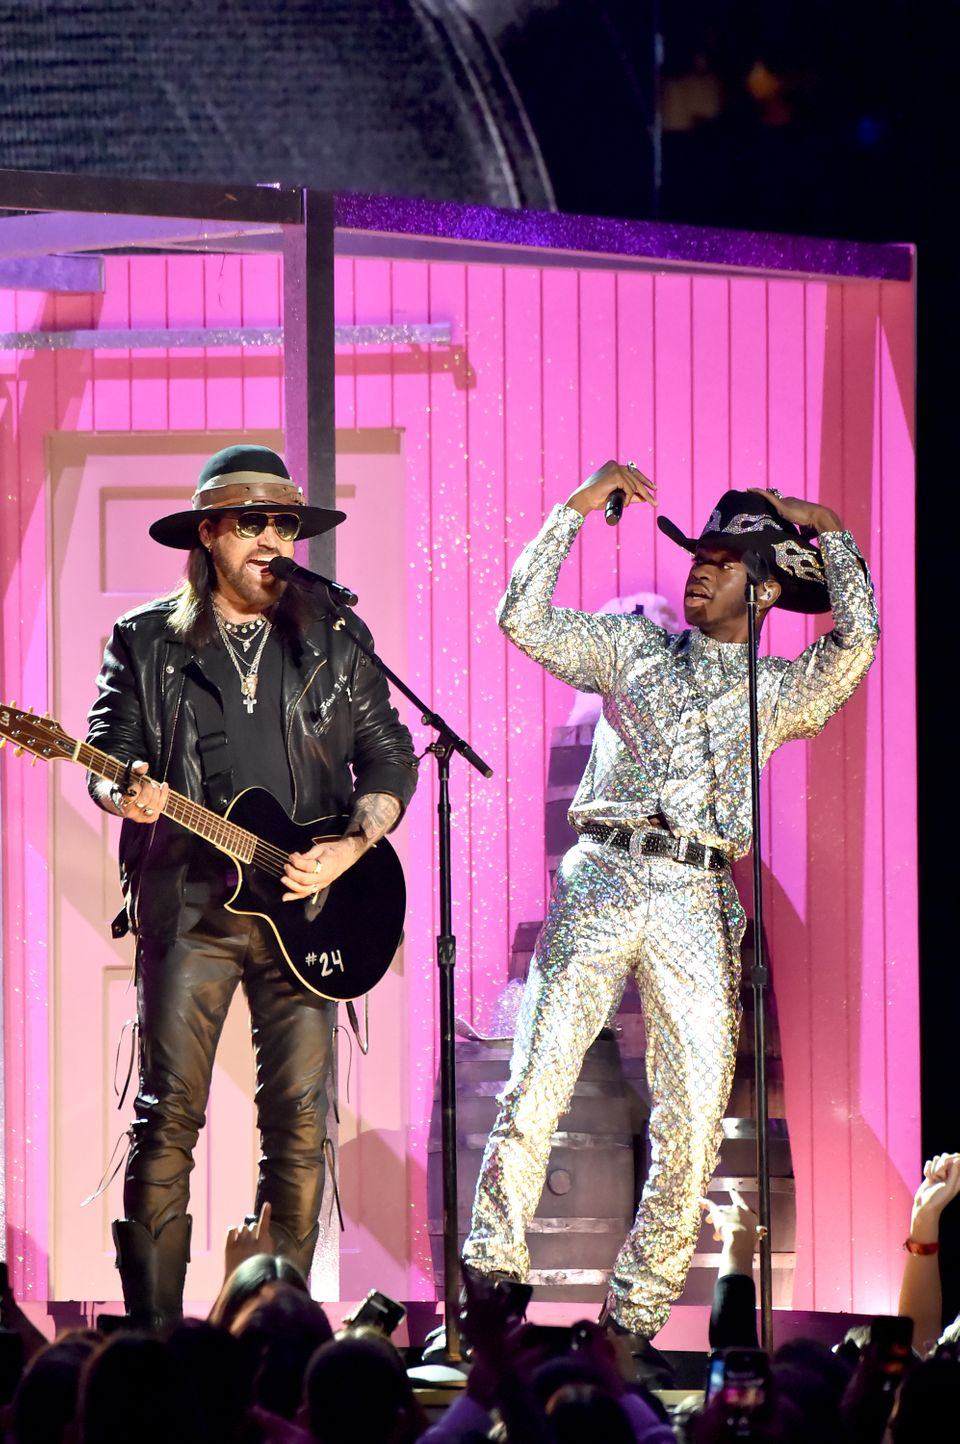 Lil Nas X and Billy Ray Cyrus preform onstage during the 62nd Annual GRAMMY Awards in